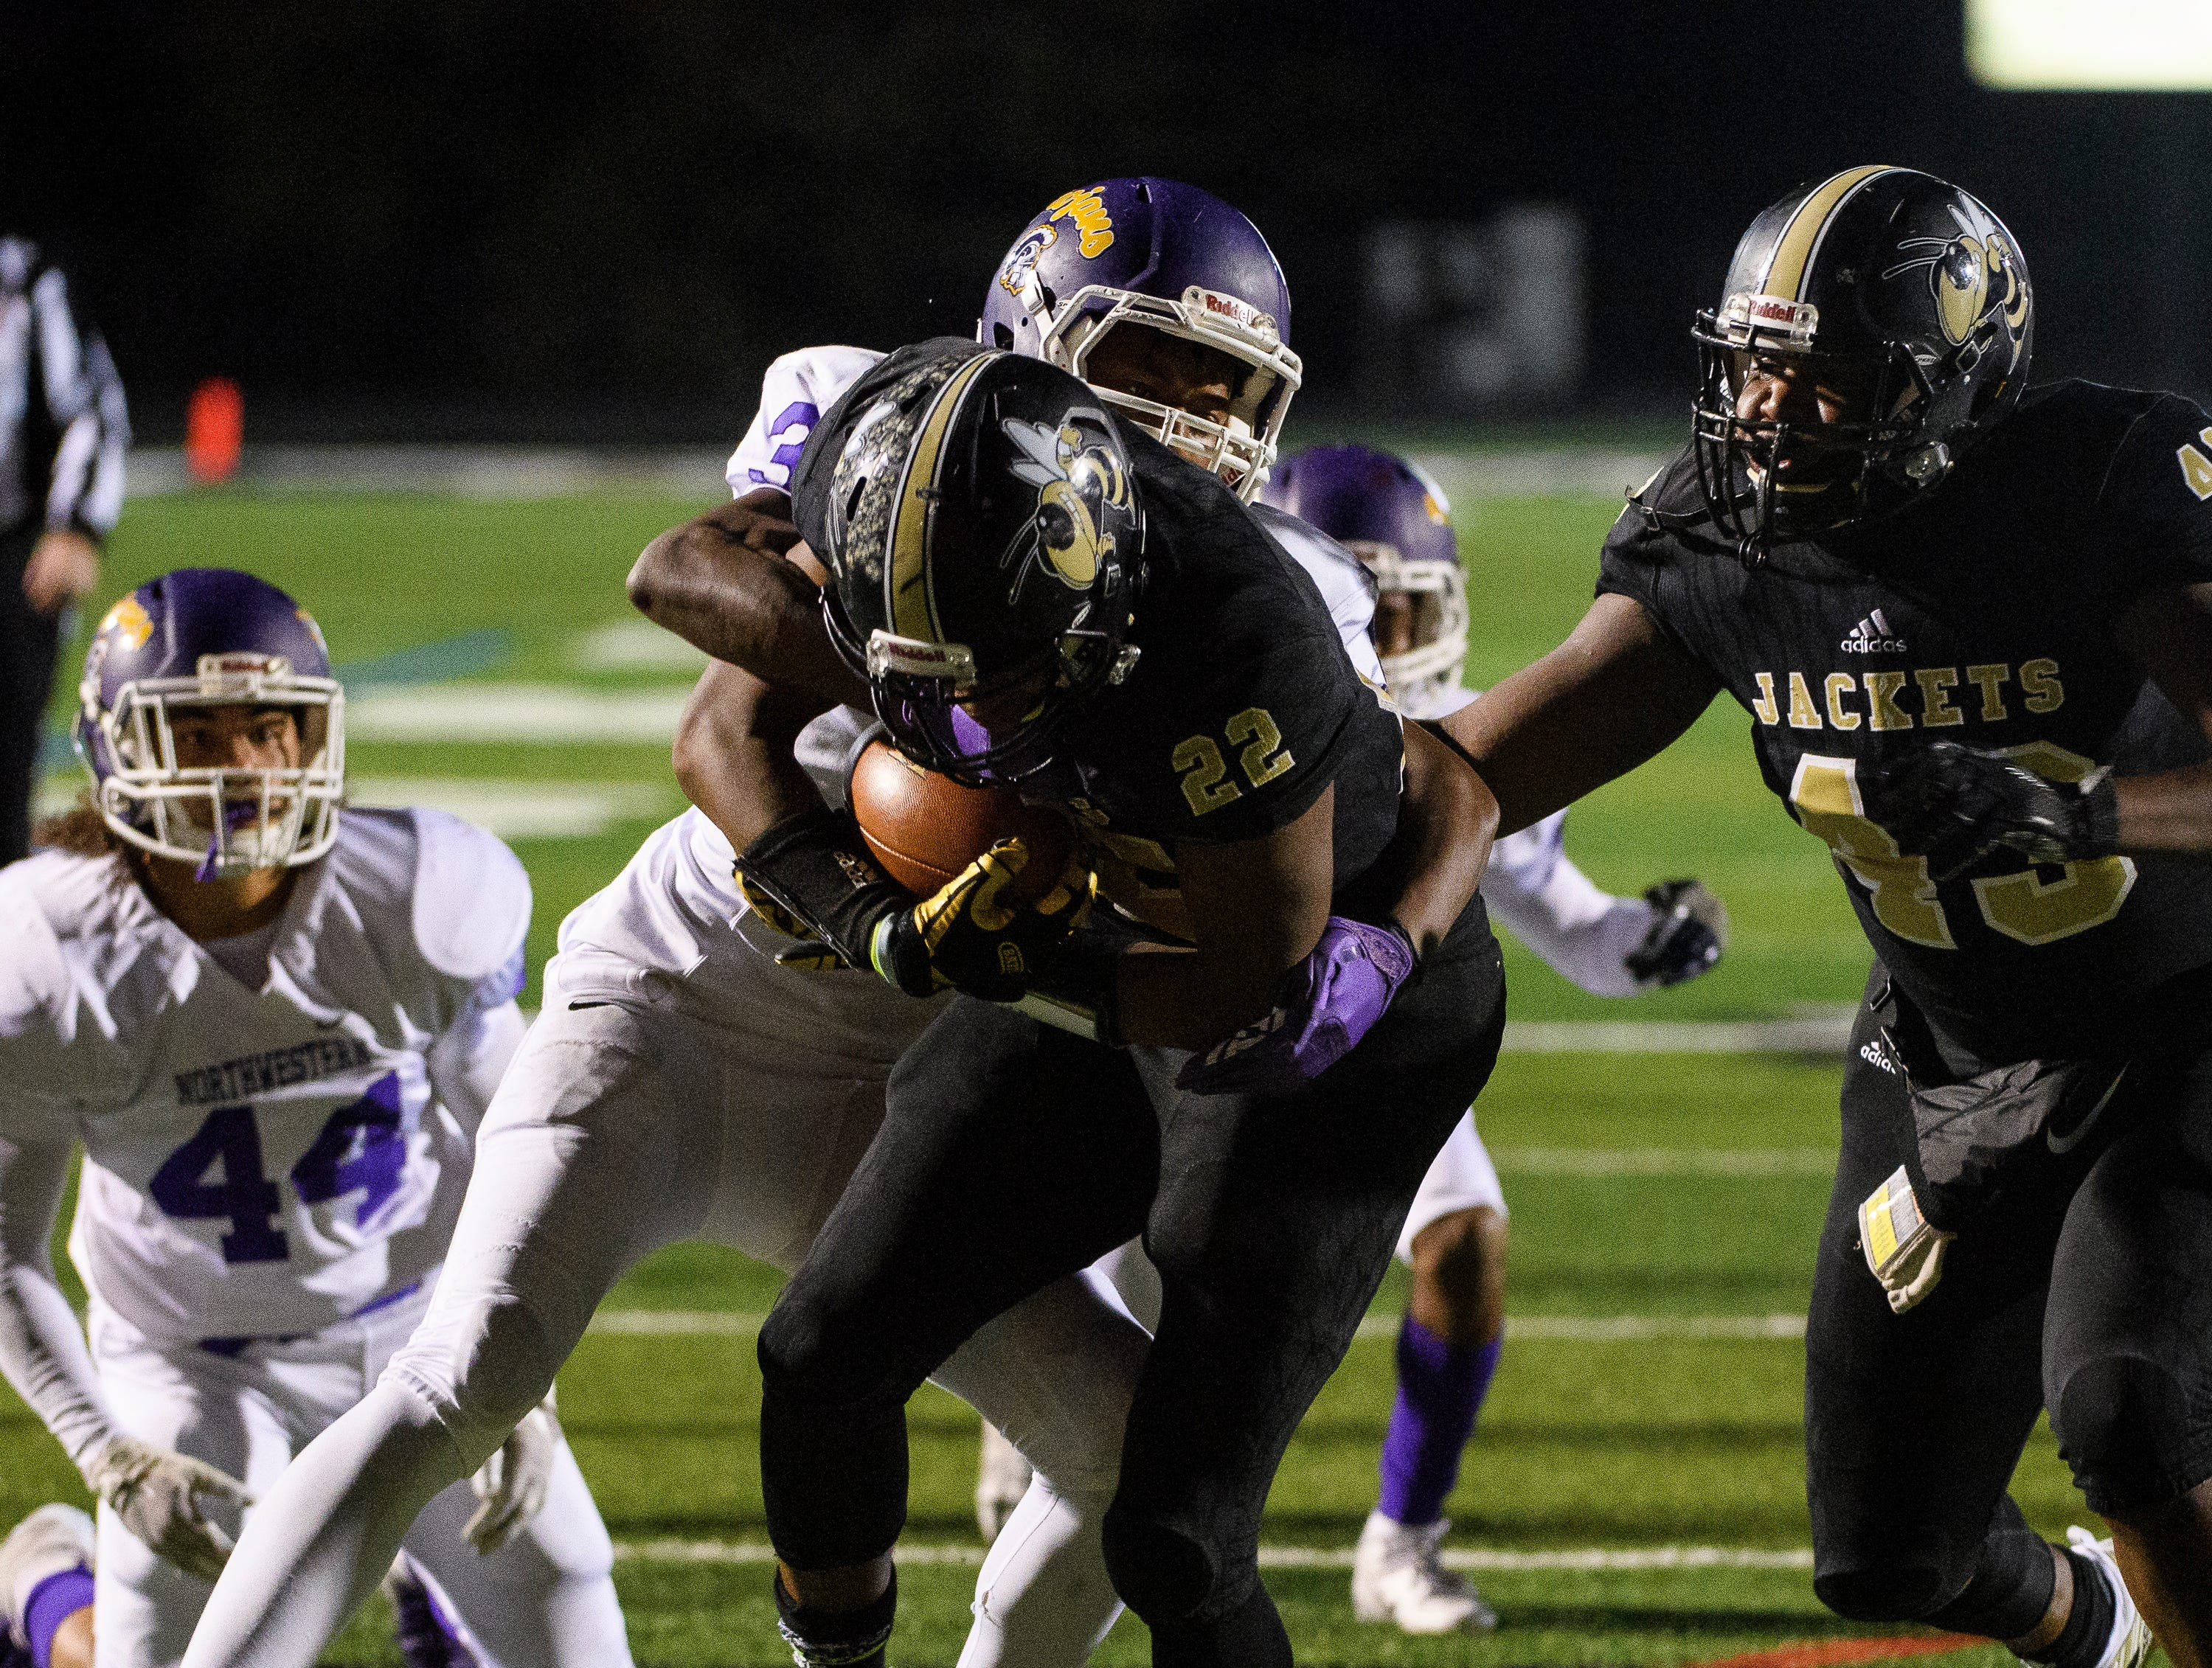 T.L. Hanna's Jaydon McKinney (22) attempts to push towards the end zone during their game against Northwestern on Friday, Nov. 16, 2018.